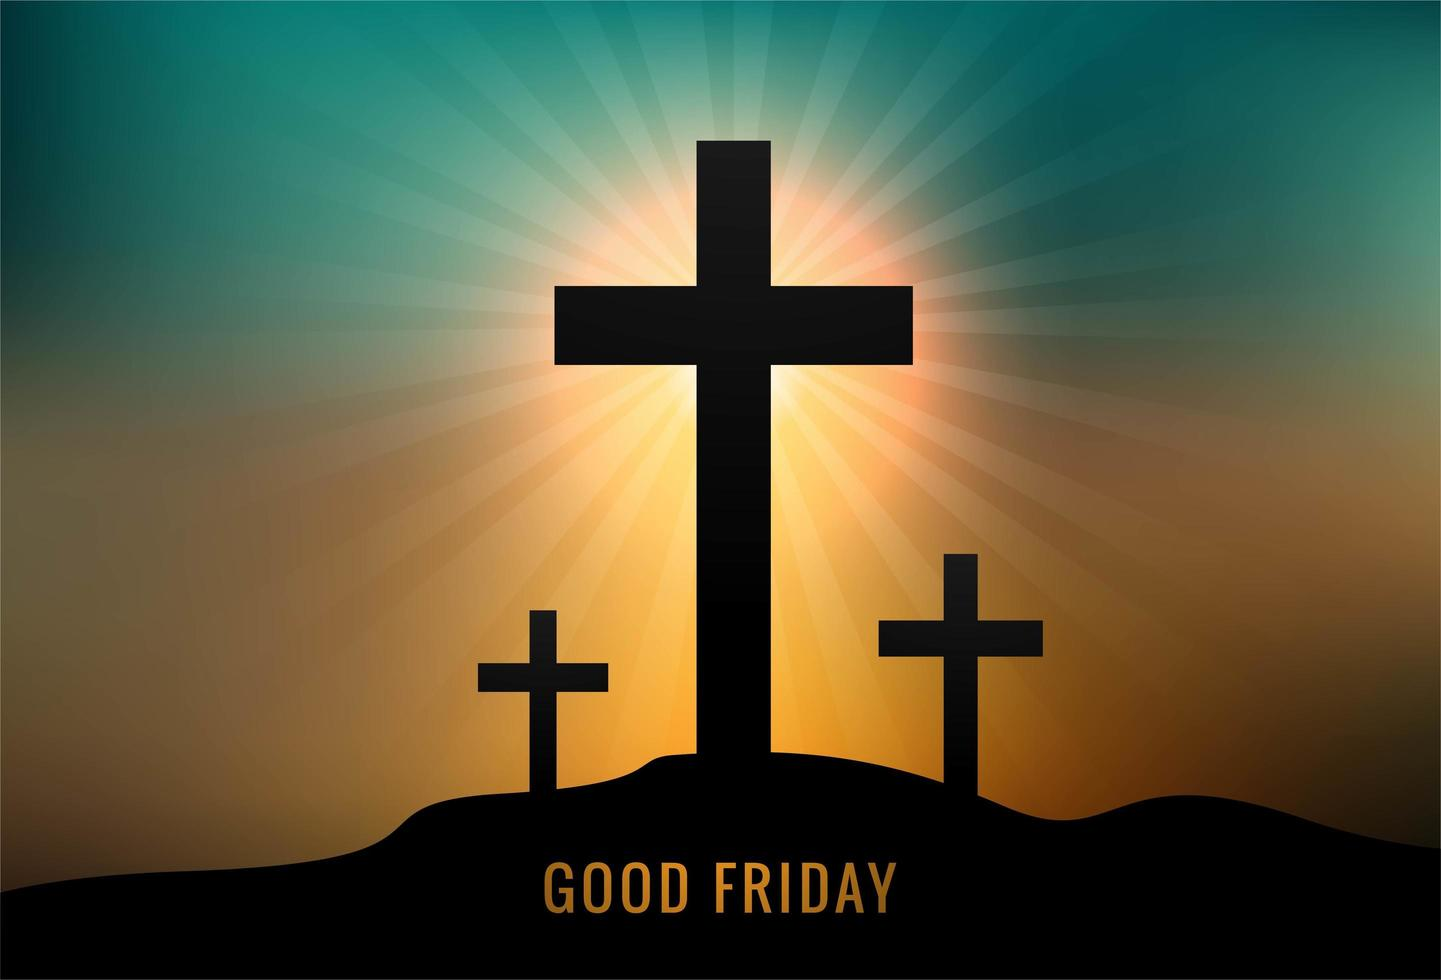 Greeting Card for Good Friday with Three Crosses vector